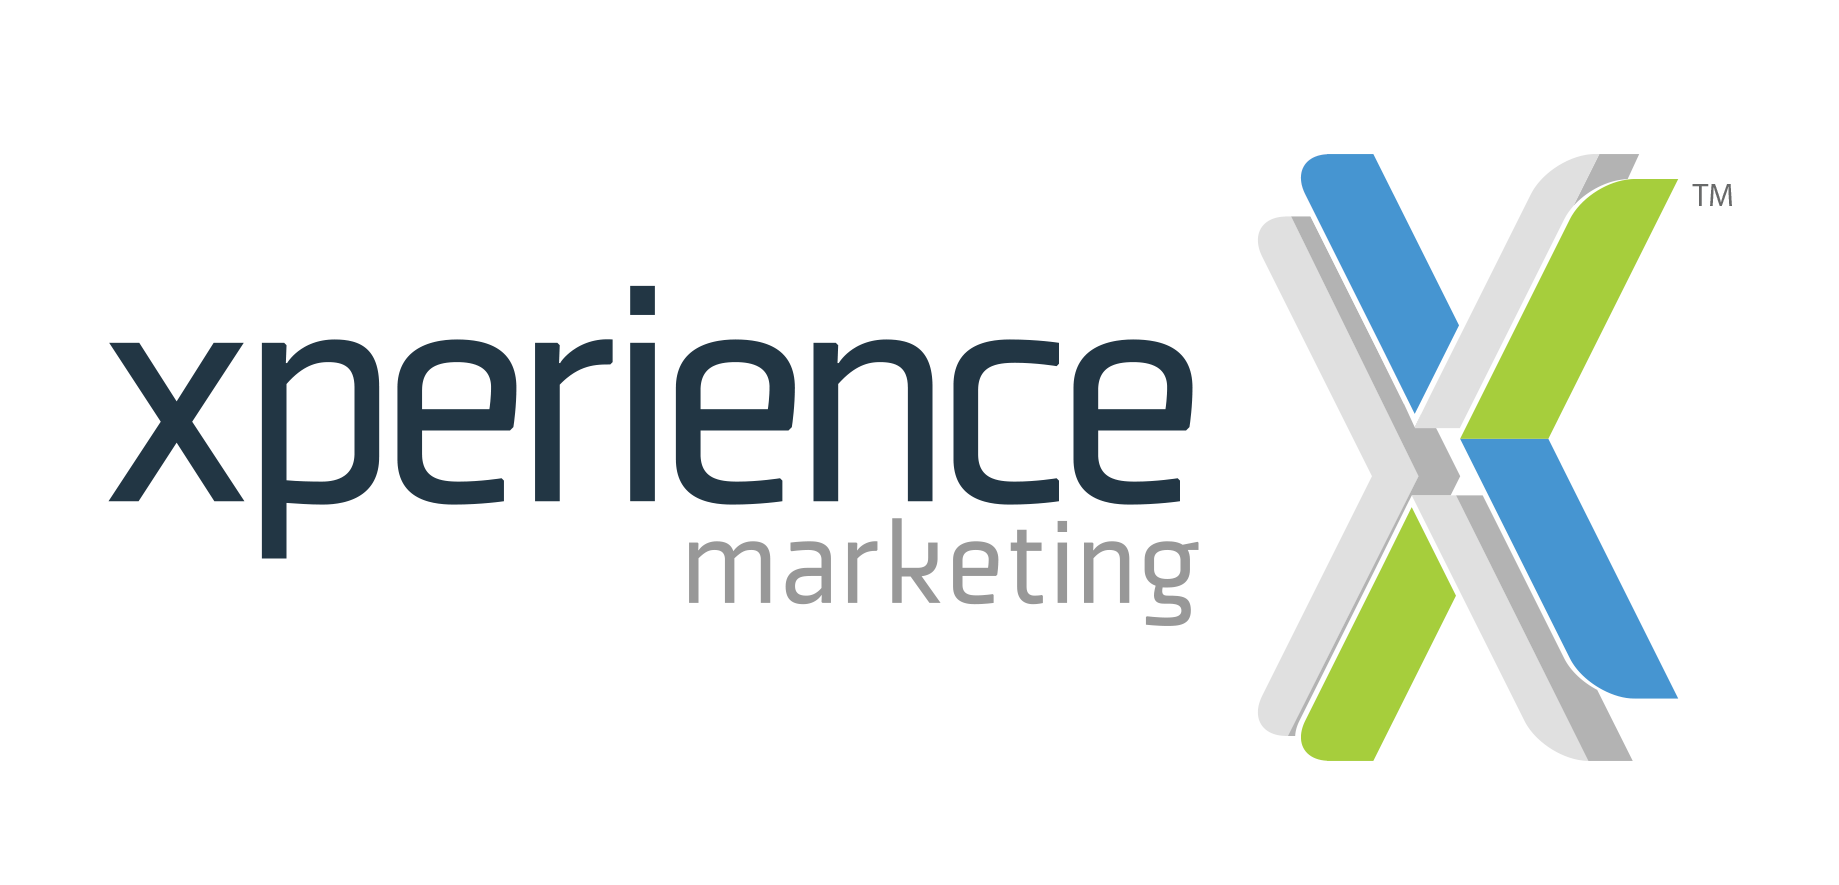 xperience-logo-PNG-large.png